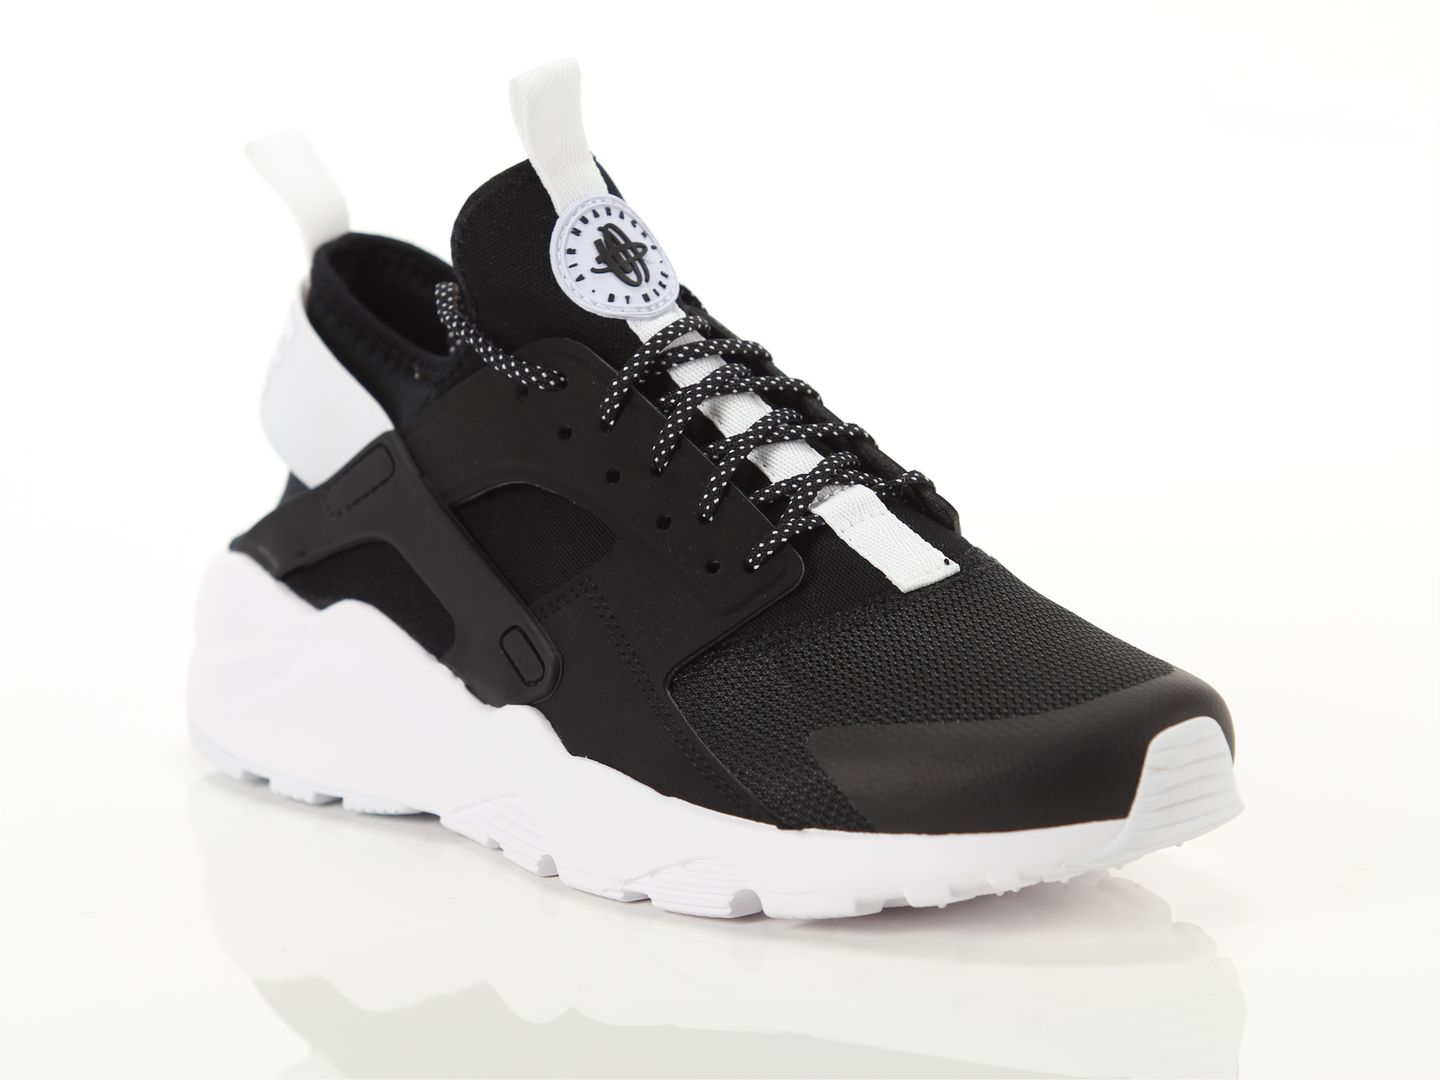 dfdaa2bcb90 ... wholesale nike air huarache run ultra black white 8afc8 3ce05